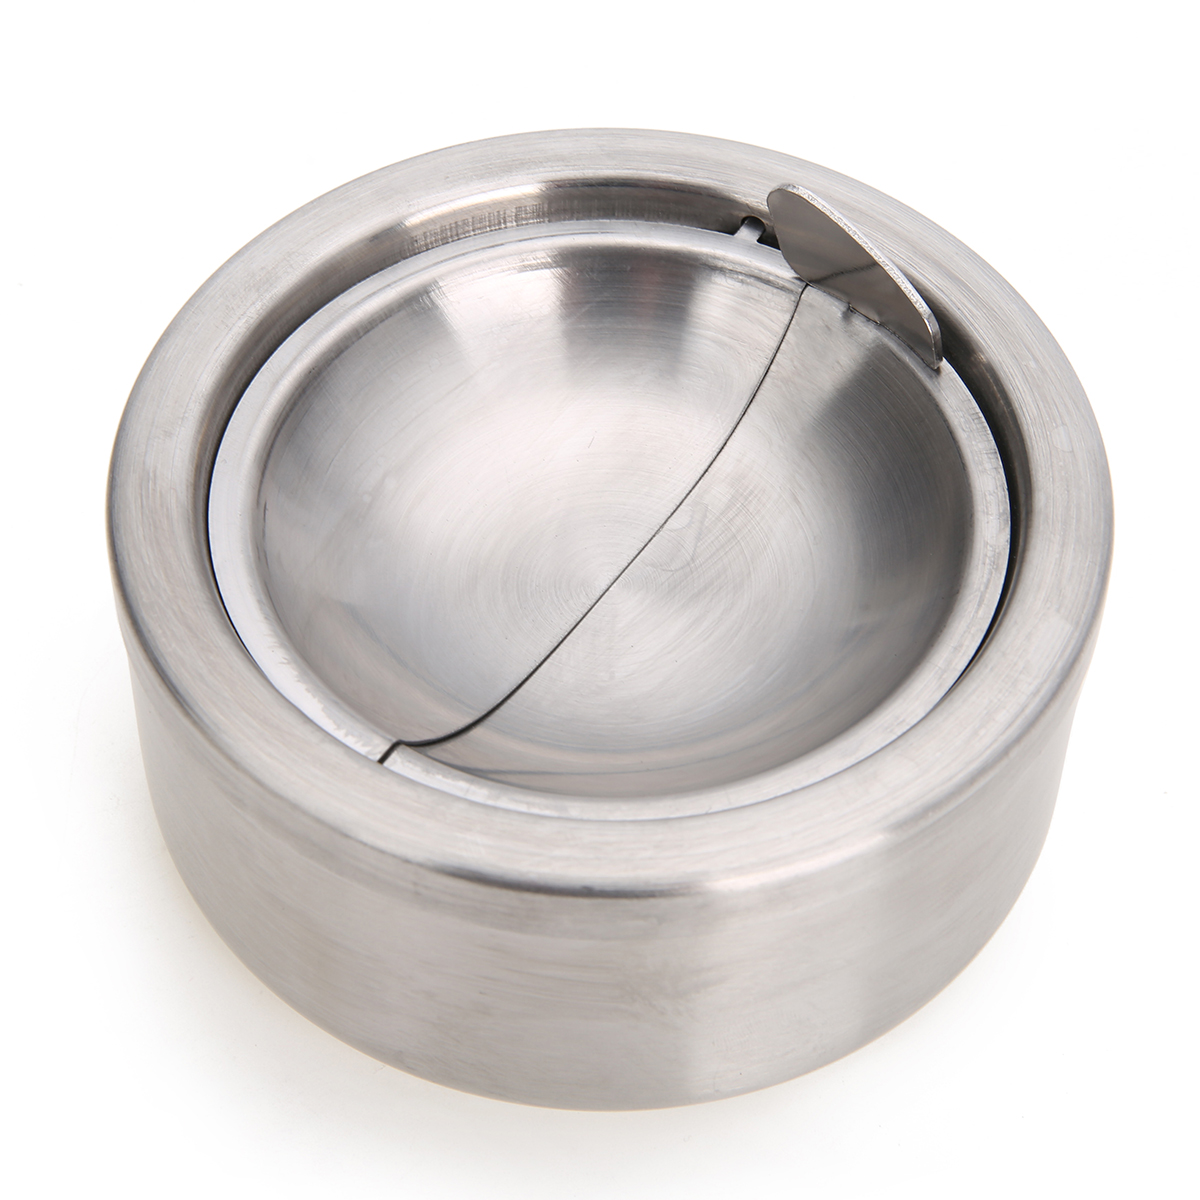 Windproof Ashtray Cigarette Stainless-Steel Smoking Silver Round With Lid 1pc